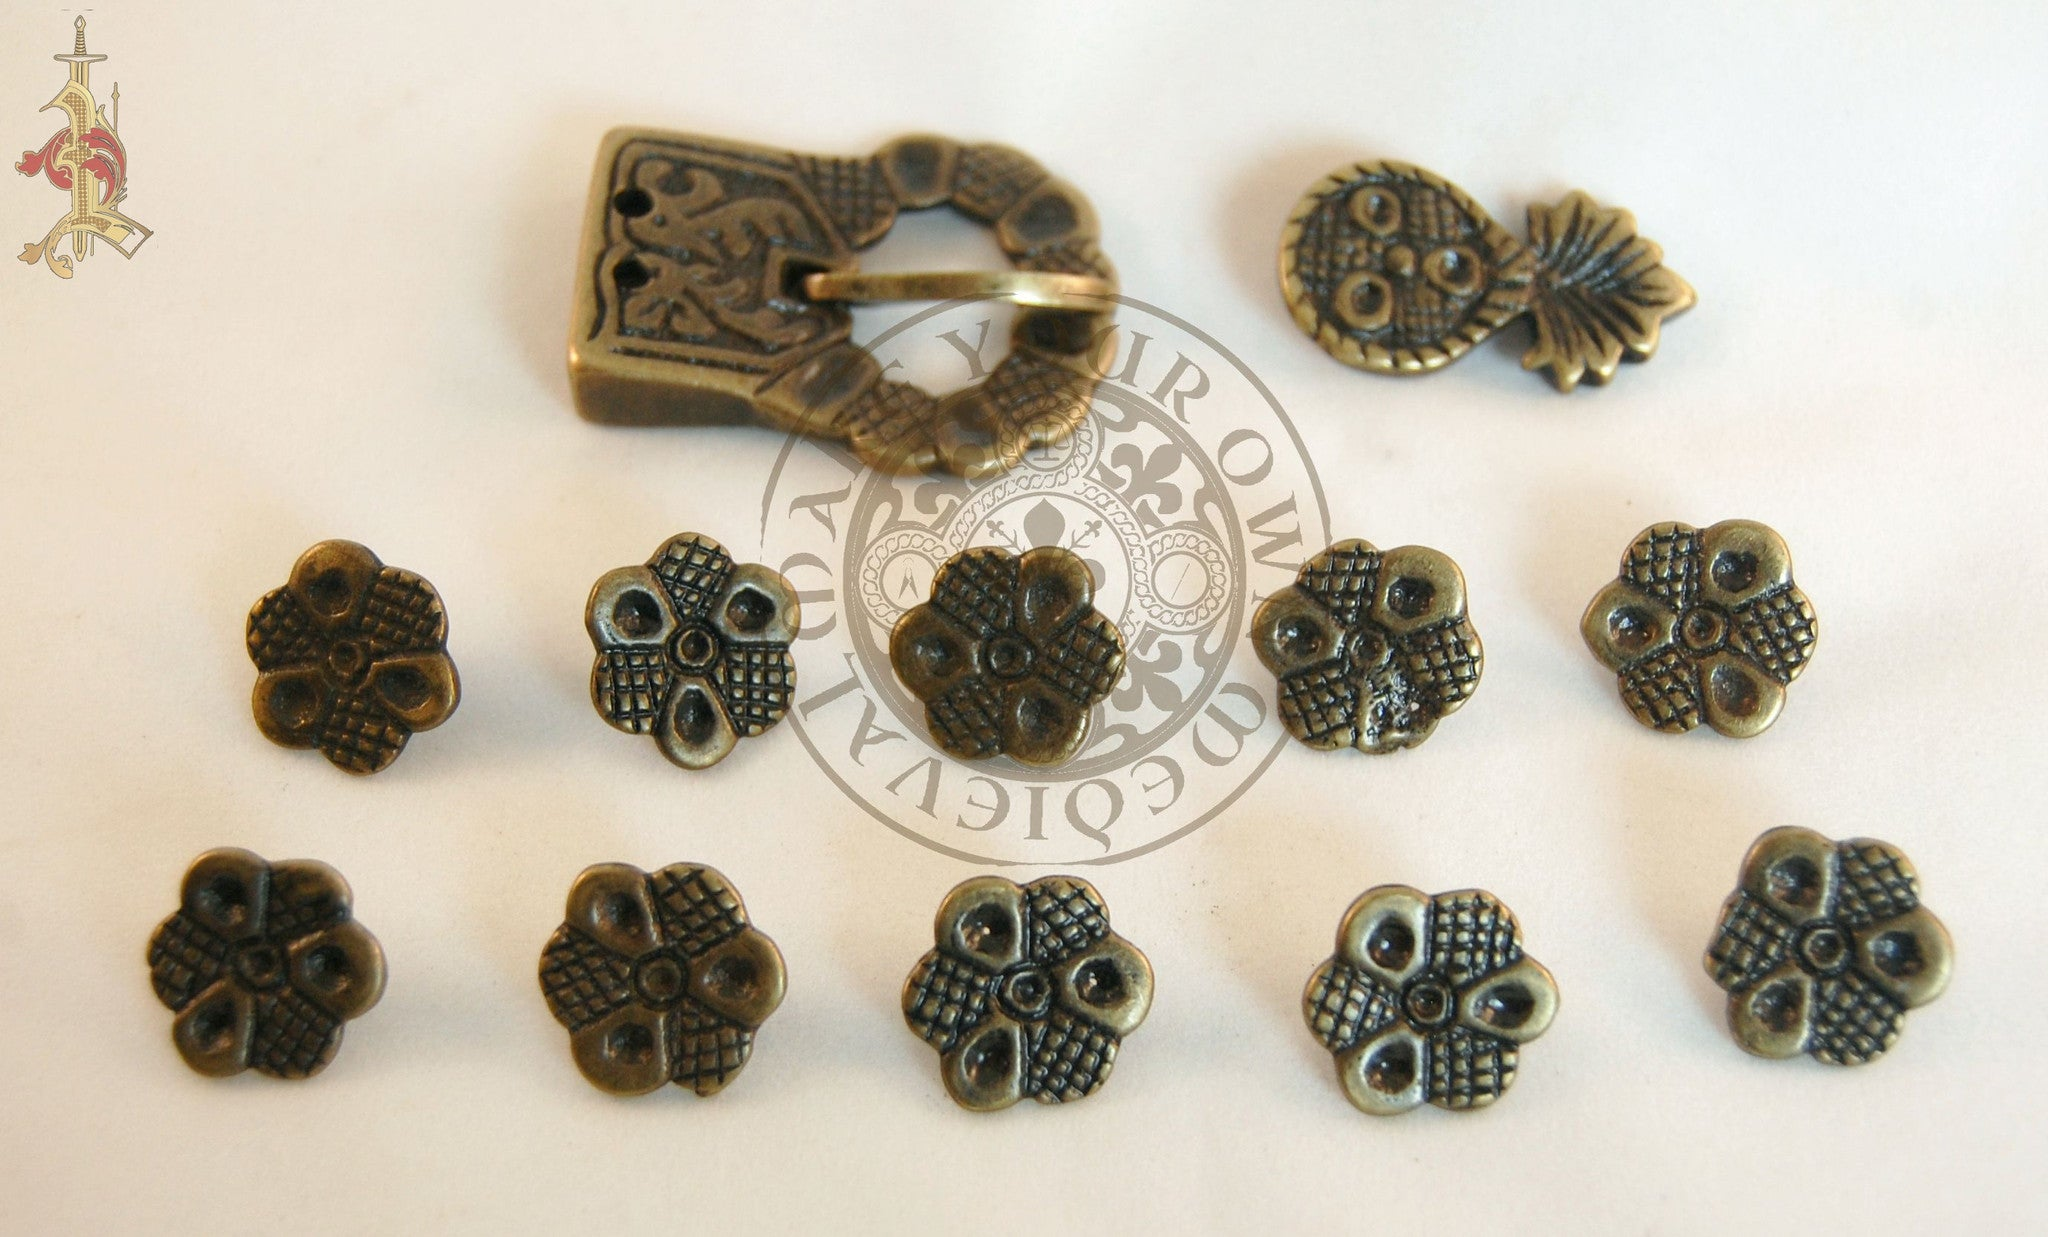 15th Century Medieval Belt buckle and strapend set with mounts